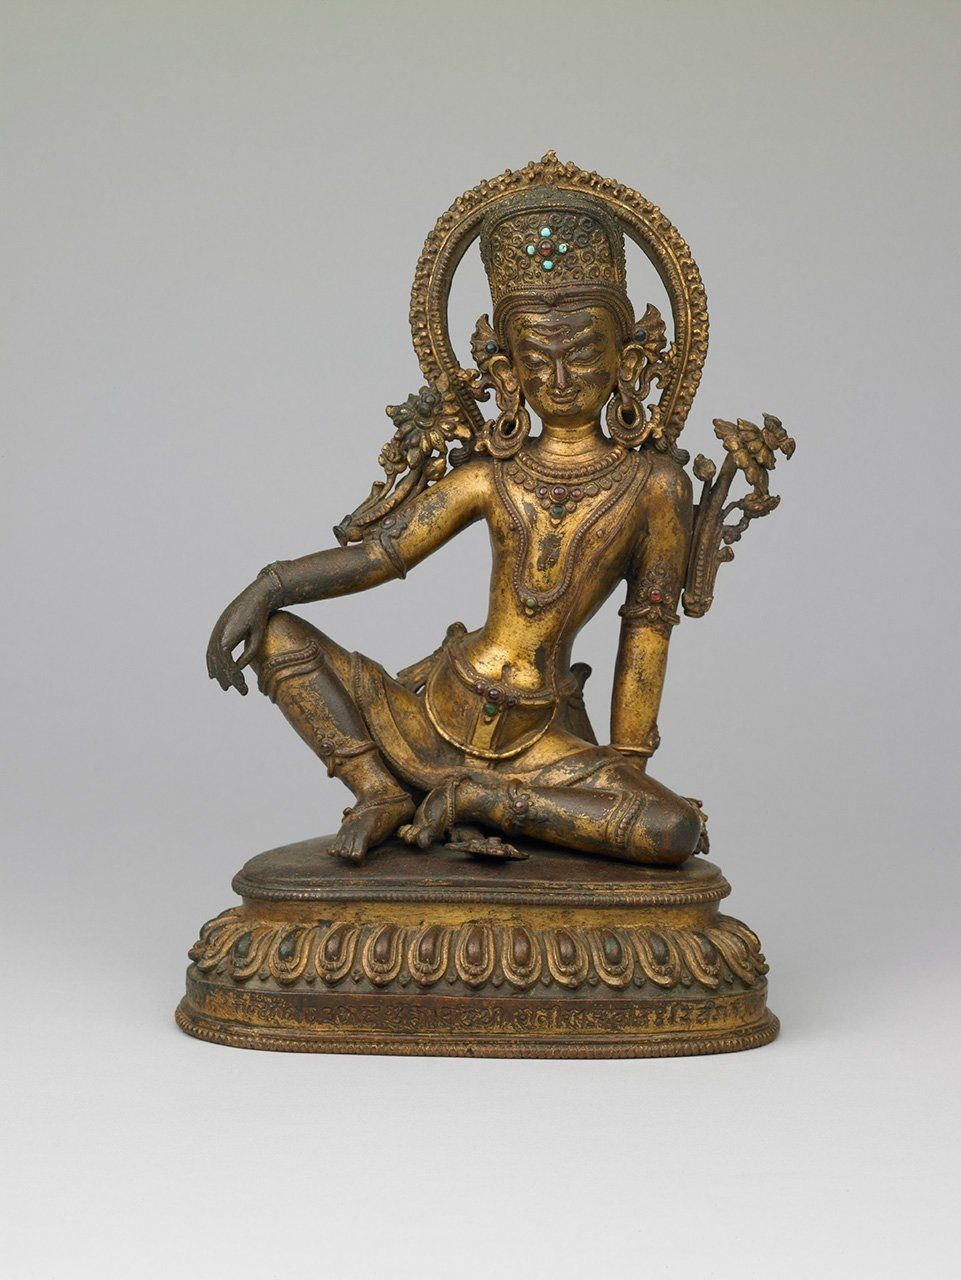 Indra, the Hindu god of gods (1463), gilt copper alloy with inset turquoise and semiprecious stone inlays